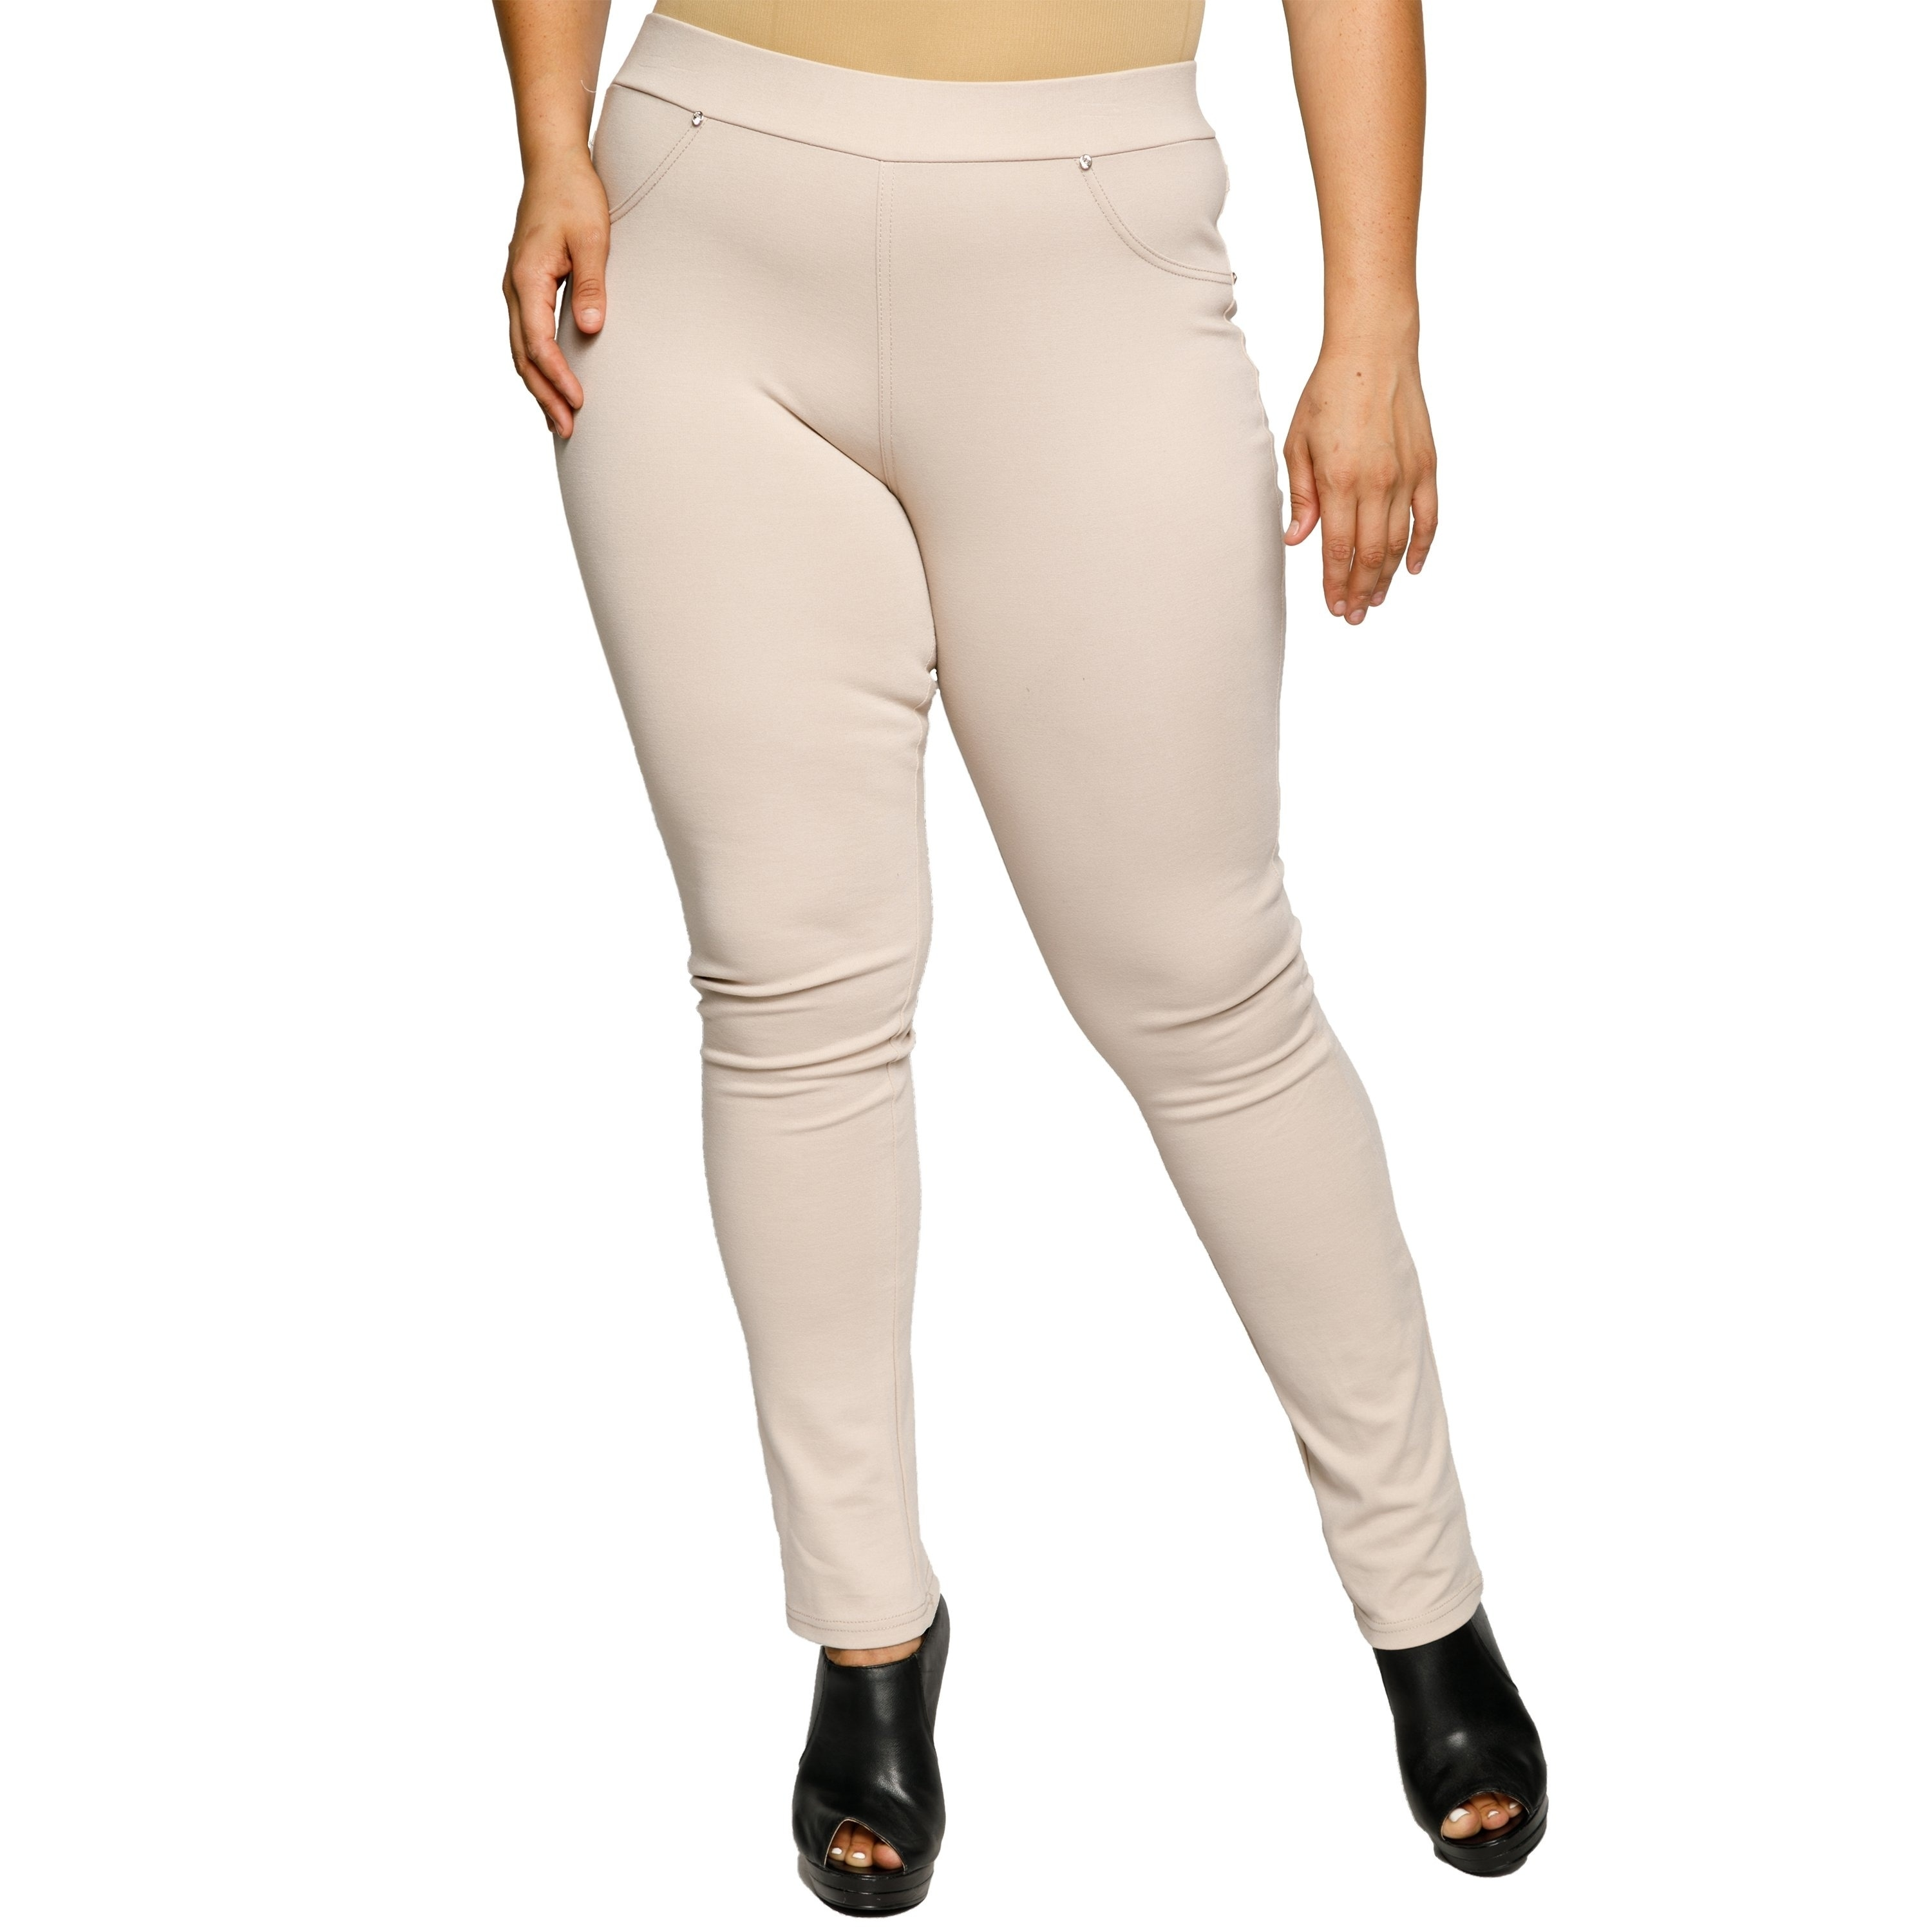 Skinny Leg Dress Pants Plus Size - raveitsafe